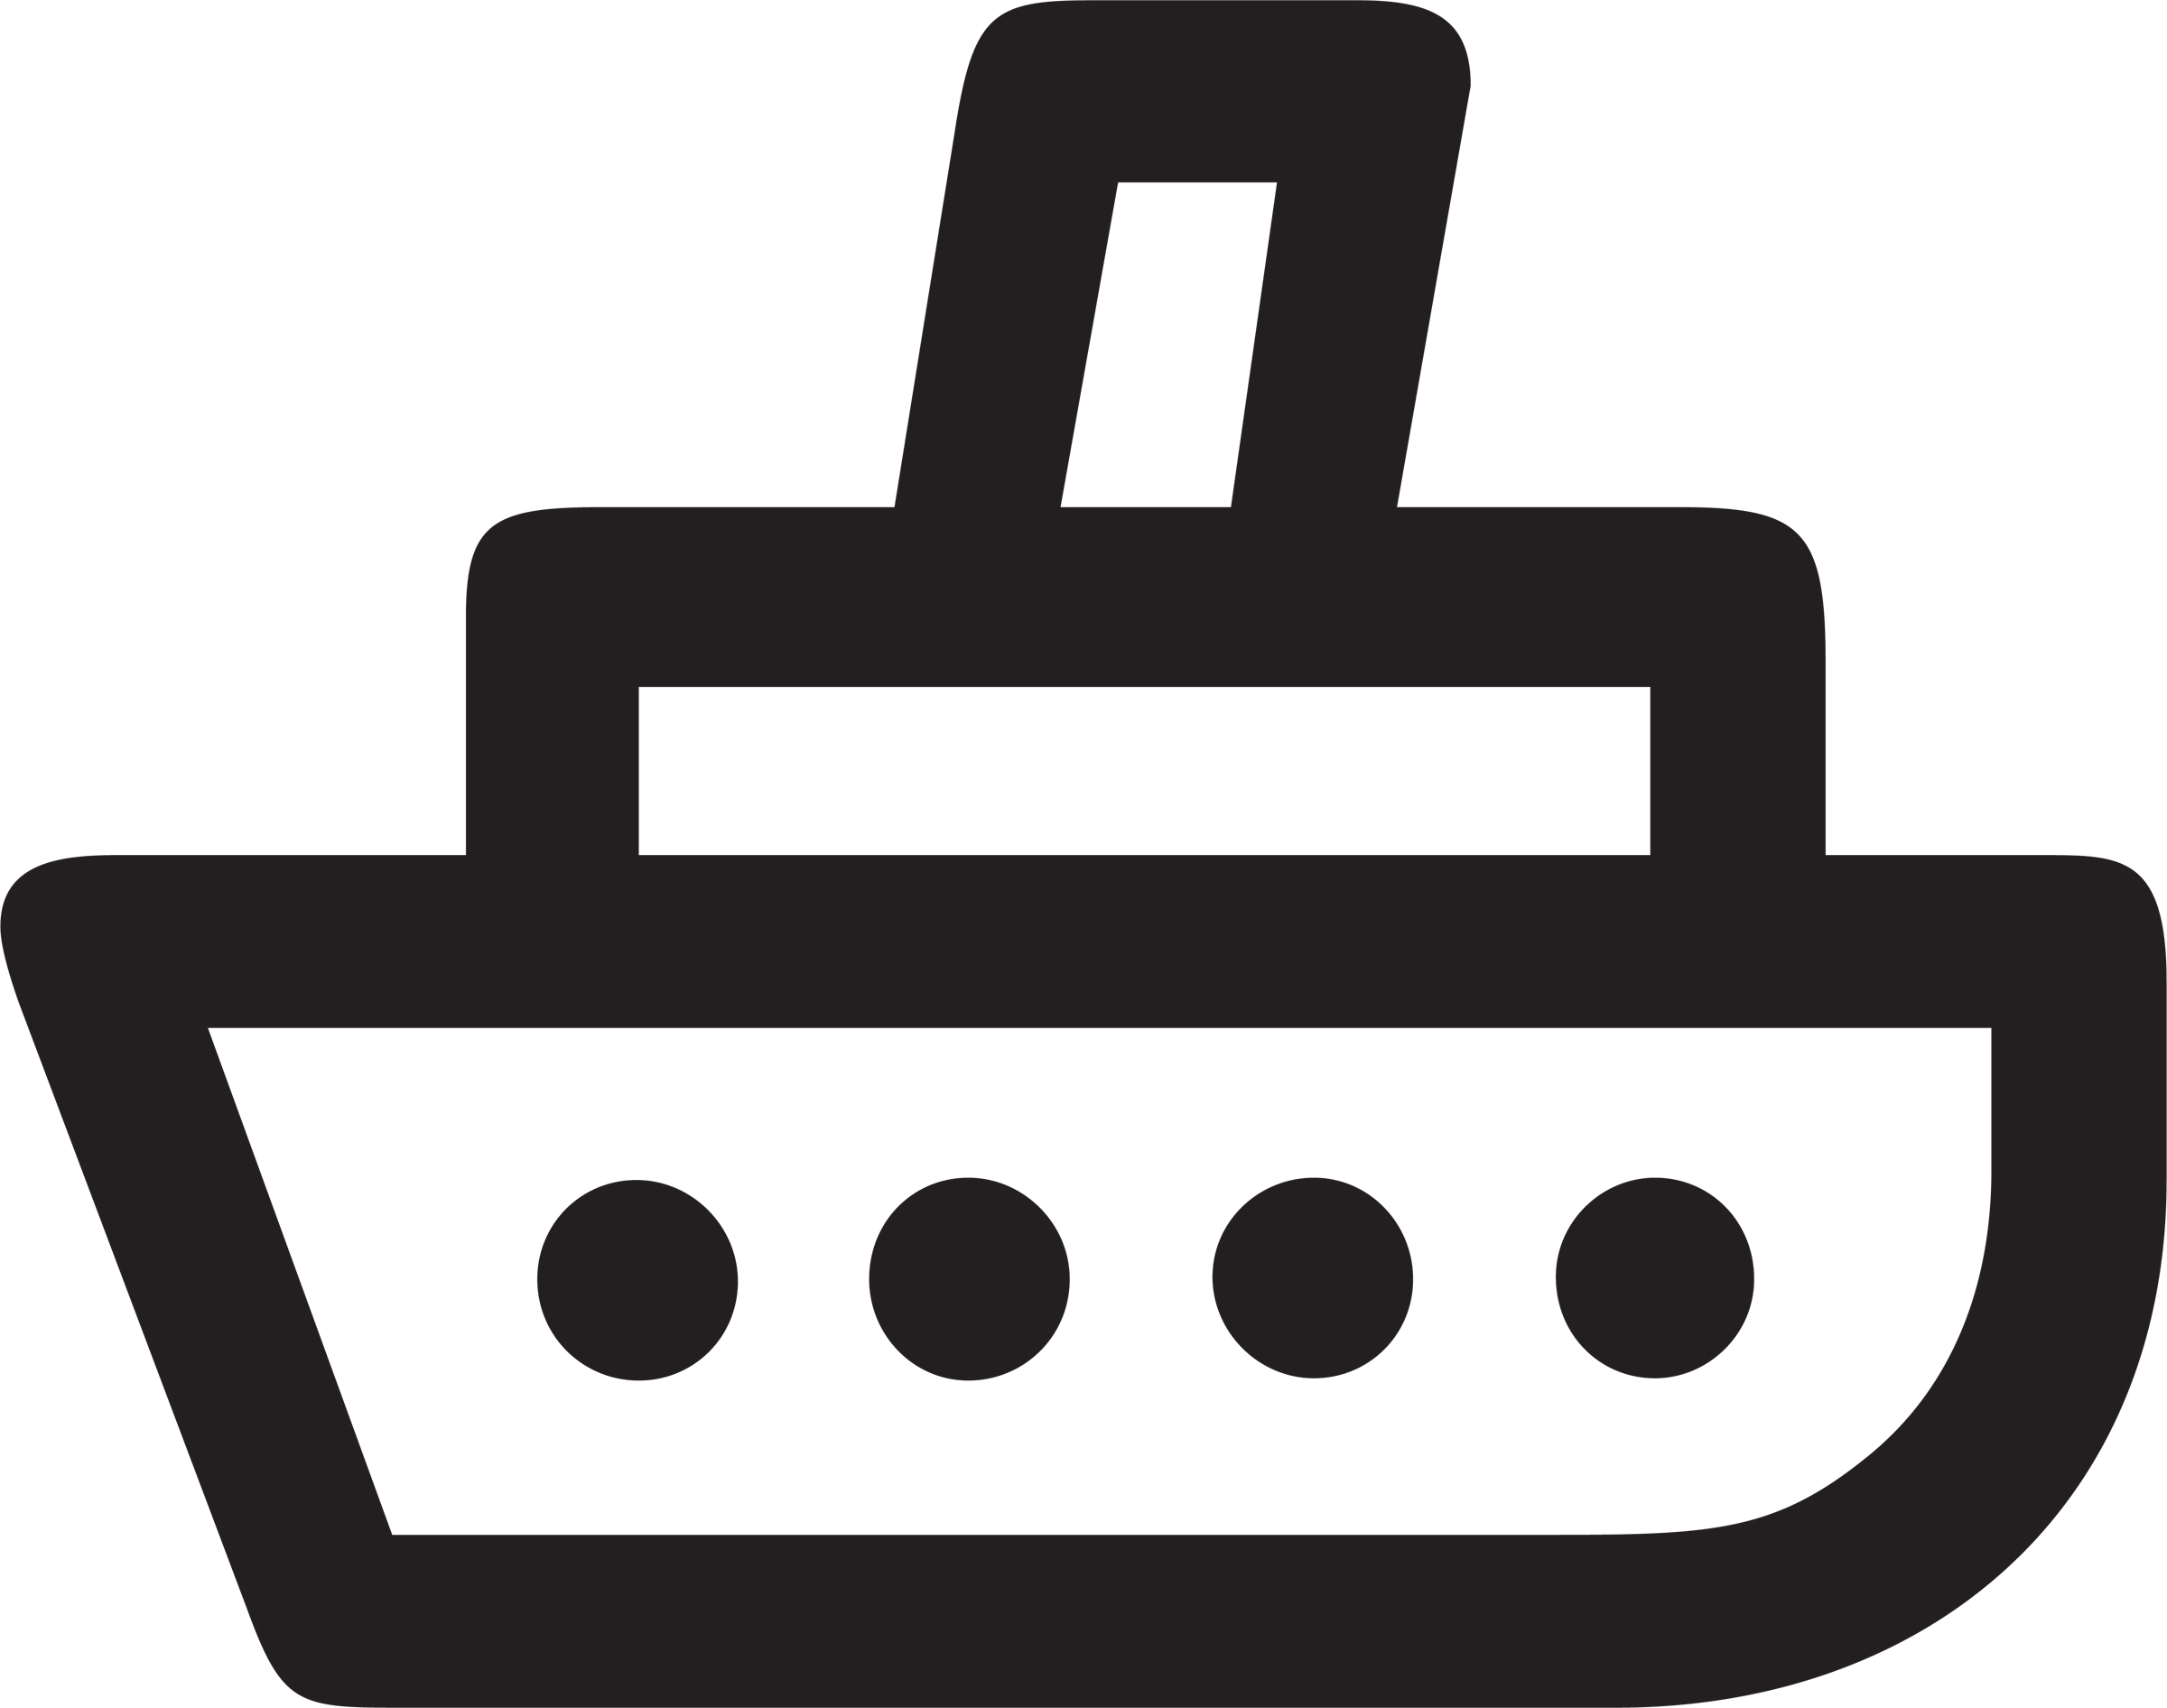 pin Tugboat clipart black and white #1 - Tugboat PNG Black And White